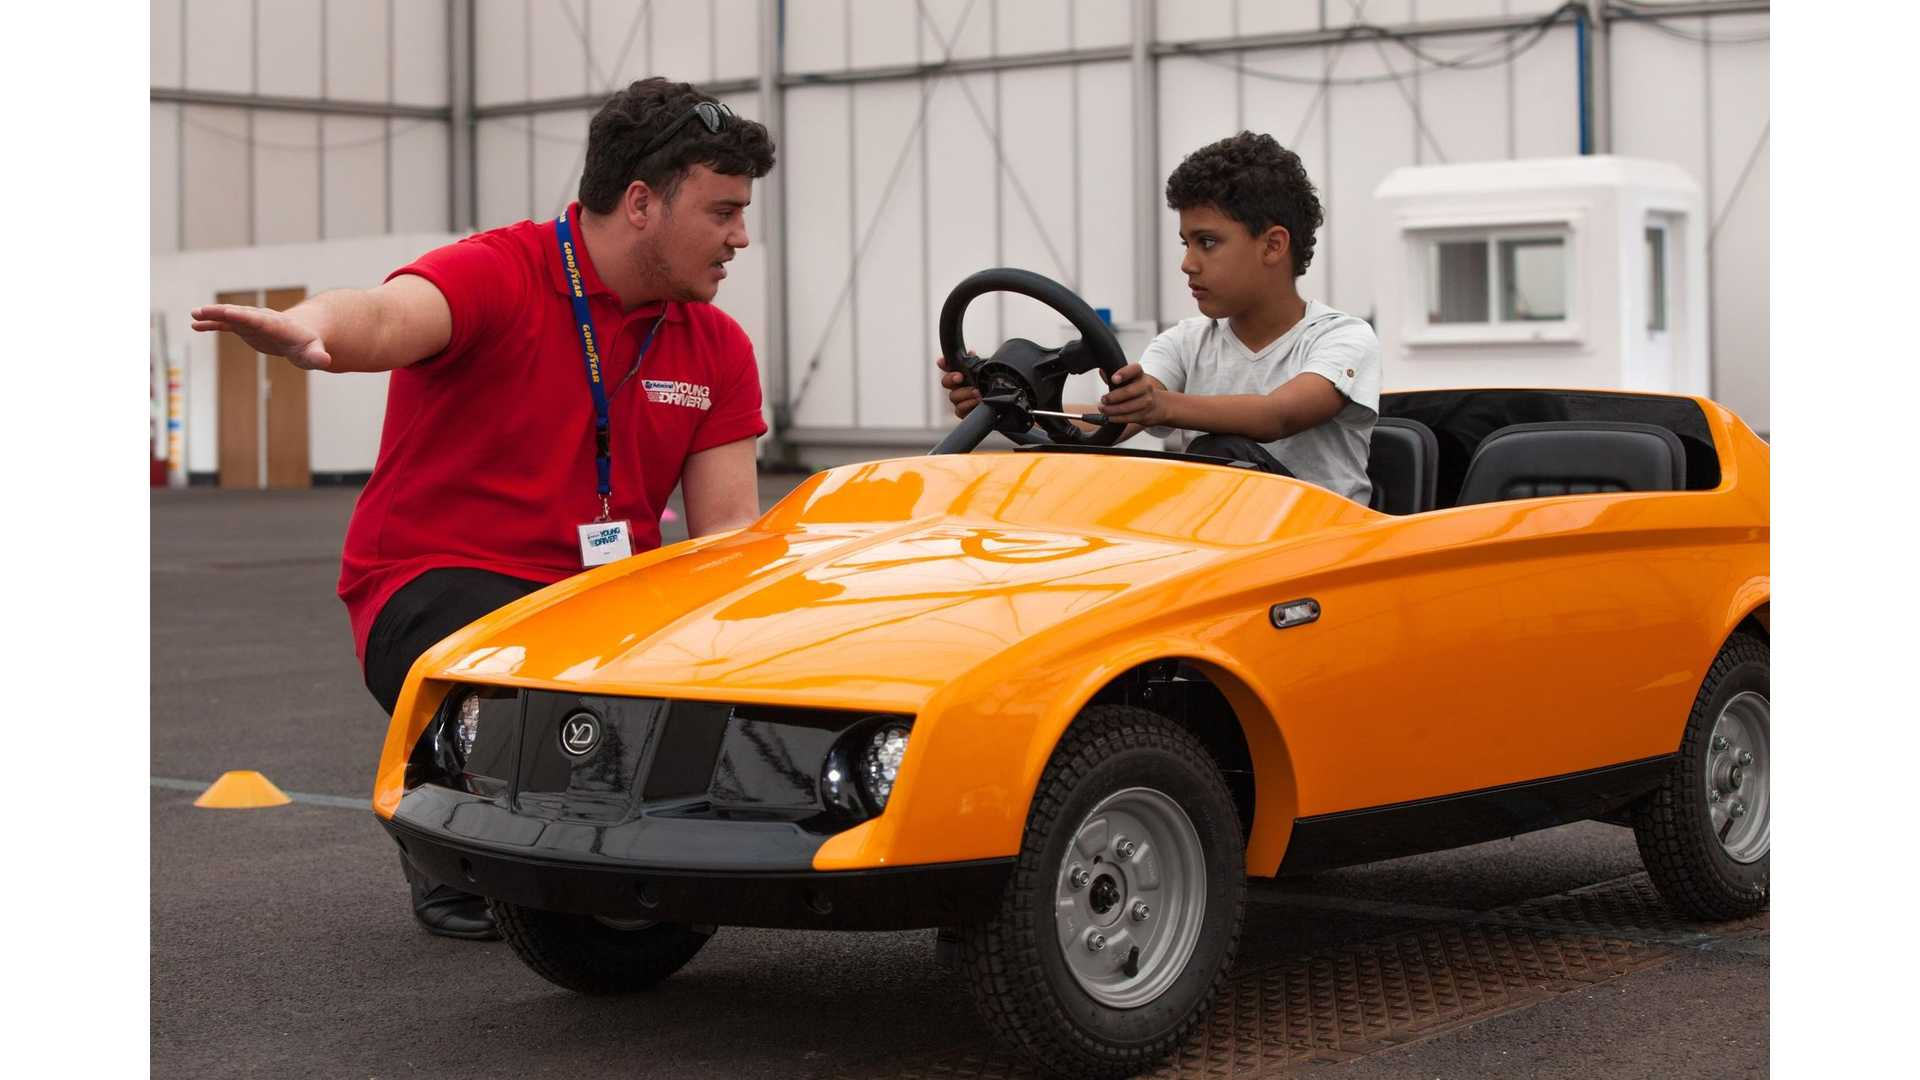 Cars For 10 Year Olds >> Firefly Electric Car Designed For Driving Lessons For 5 10